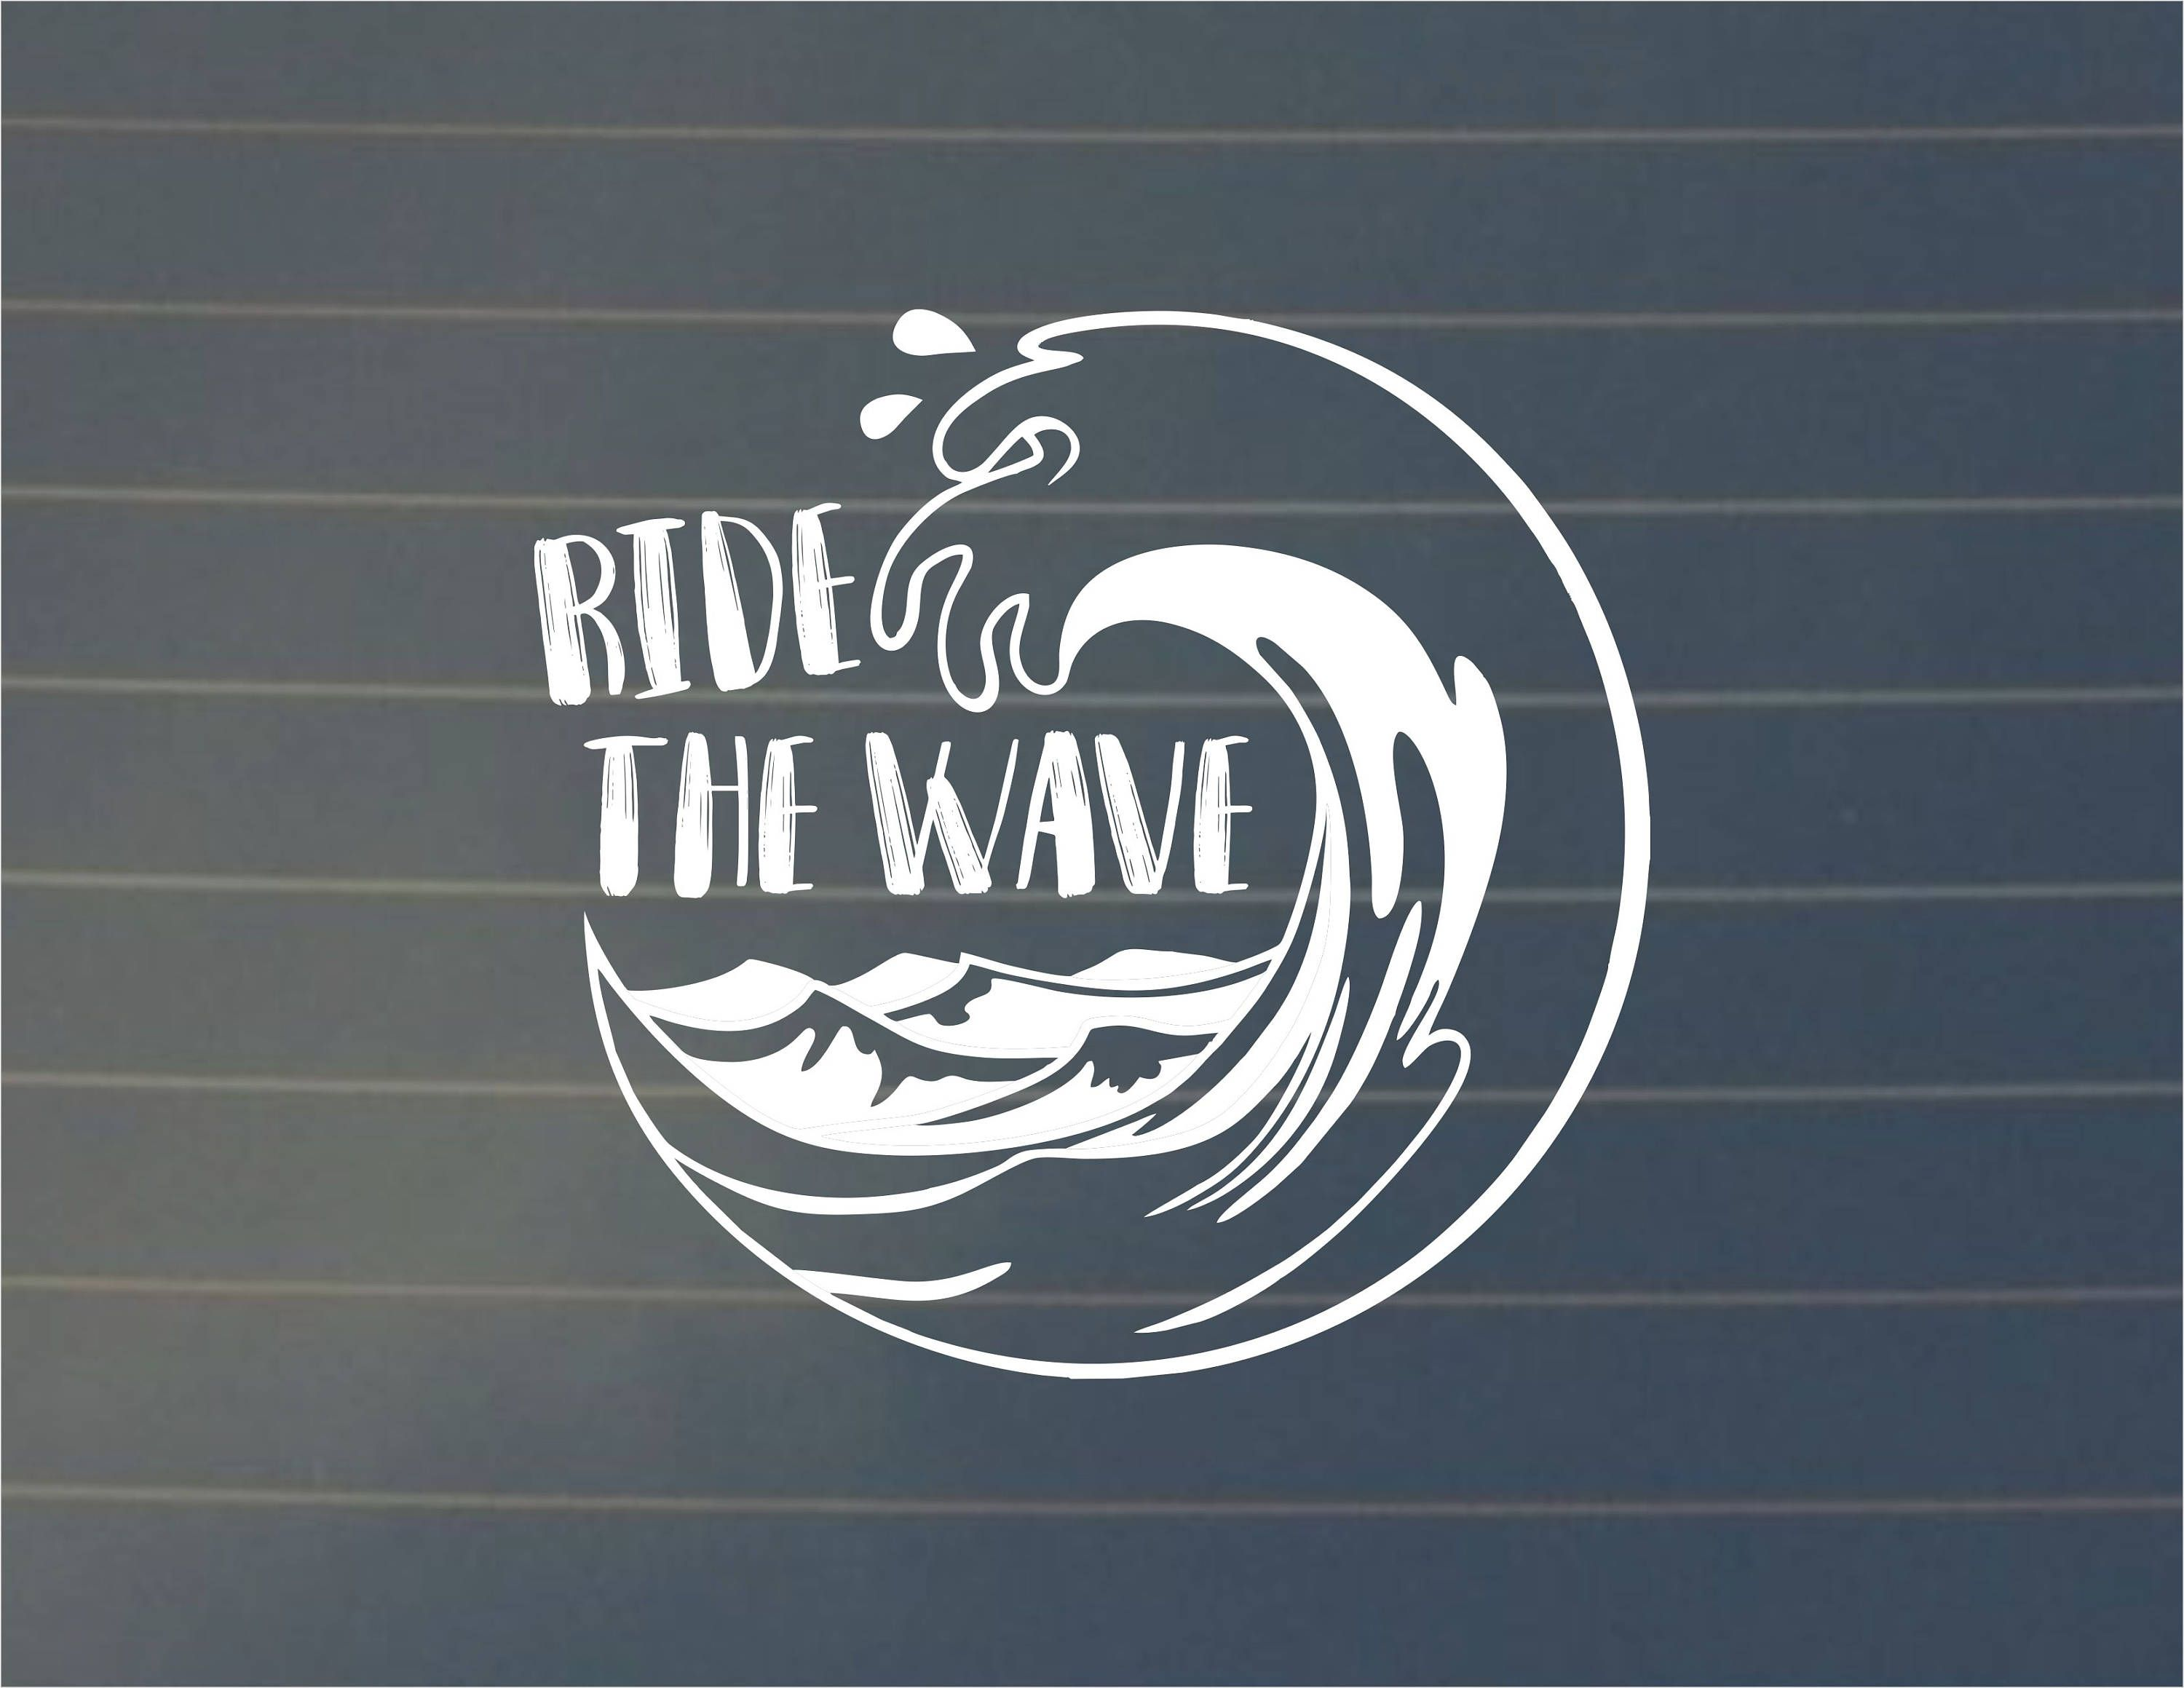 Decal Ride The Wave Decal Car Decal Wave Sticker Ocean Decal Ocean Sticker Laptop Decal Laptop Stickers Vinyl Car Decals Vinyl Sticker Monogram Decal [ 2319 x 3000 Pixel ]